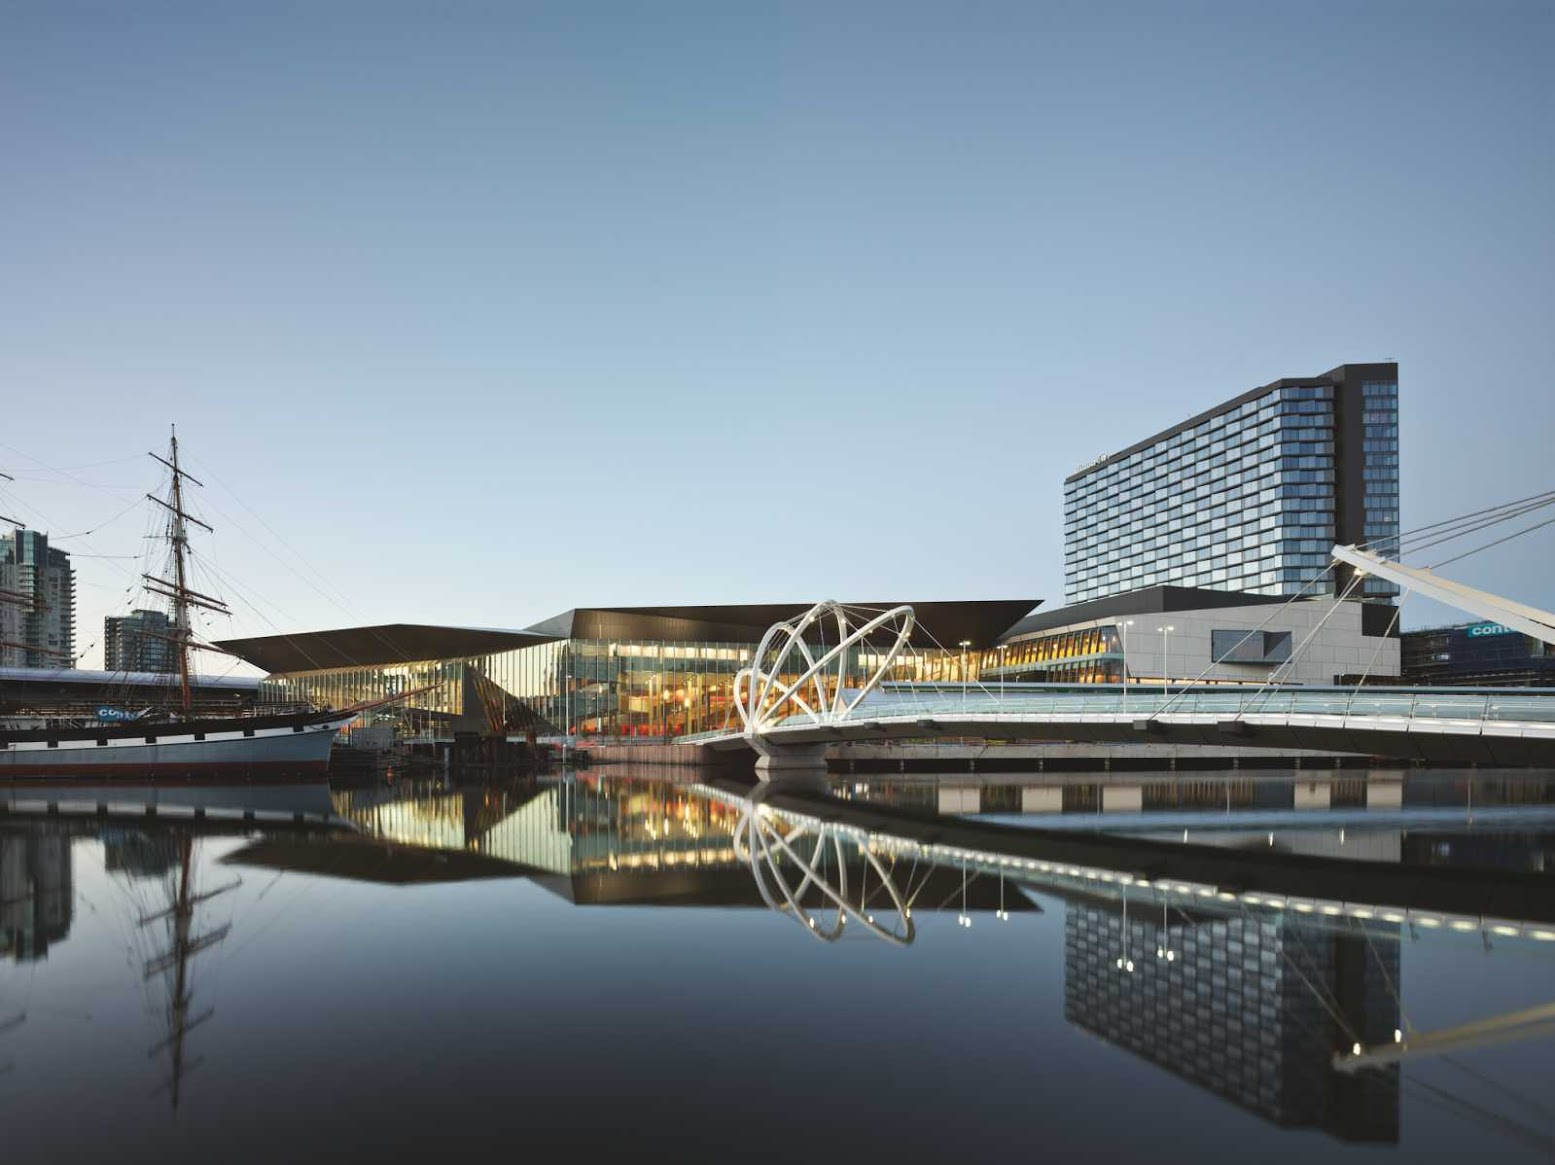 Melbourne Victoria, Australia: [MELBOURNE CONVENTION AND EXHIBITION CENTRE BY WOODS BAGOT]